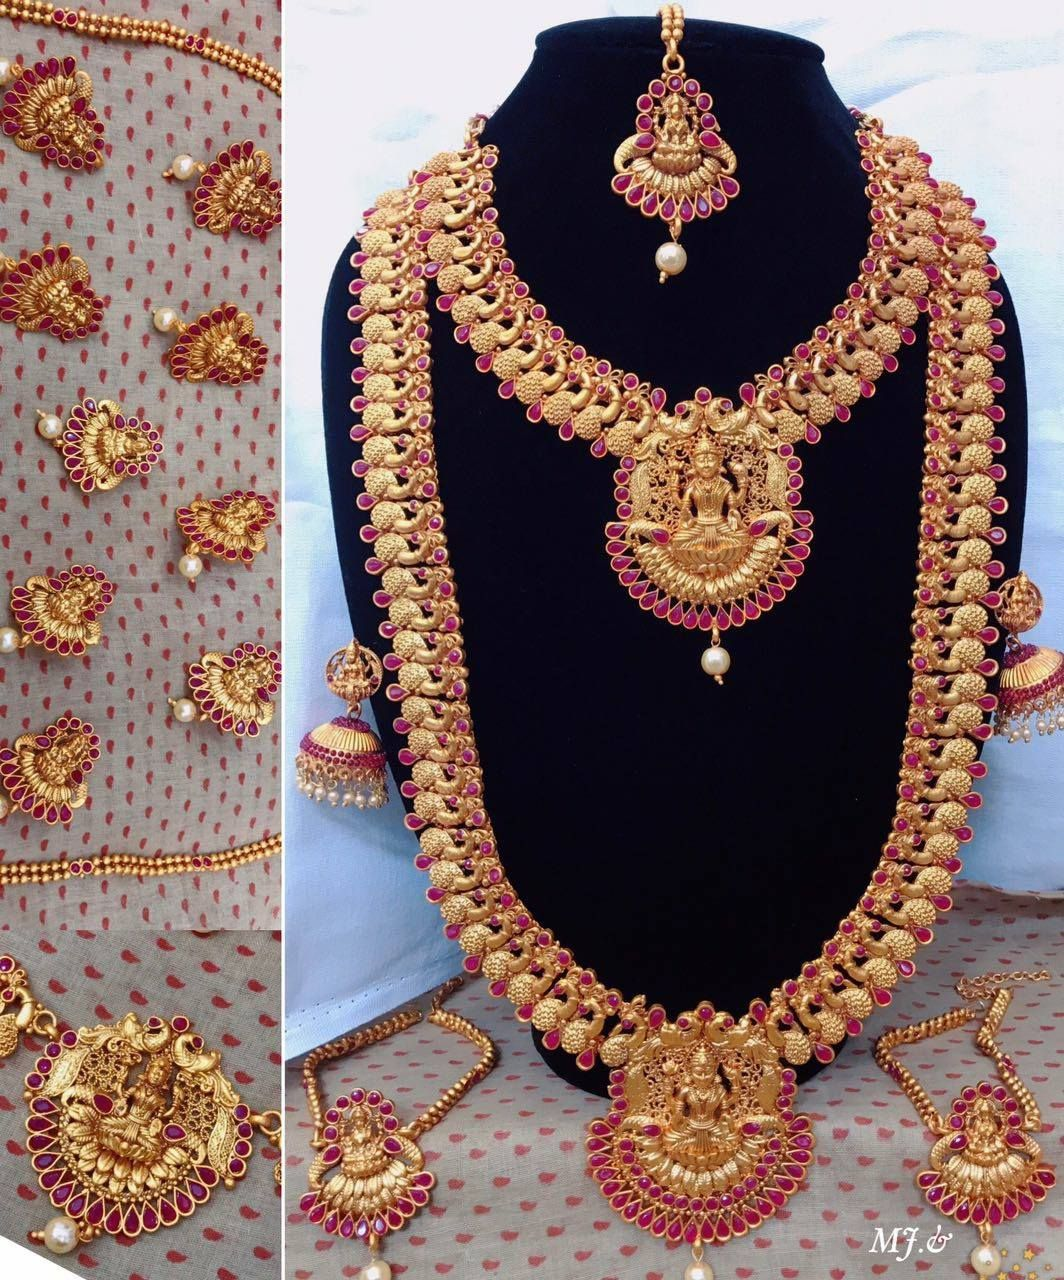 d9ebe9bd9 Beautiful necklace and long haram set with lakshmi devi pendant. 20  November 2017